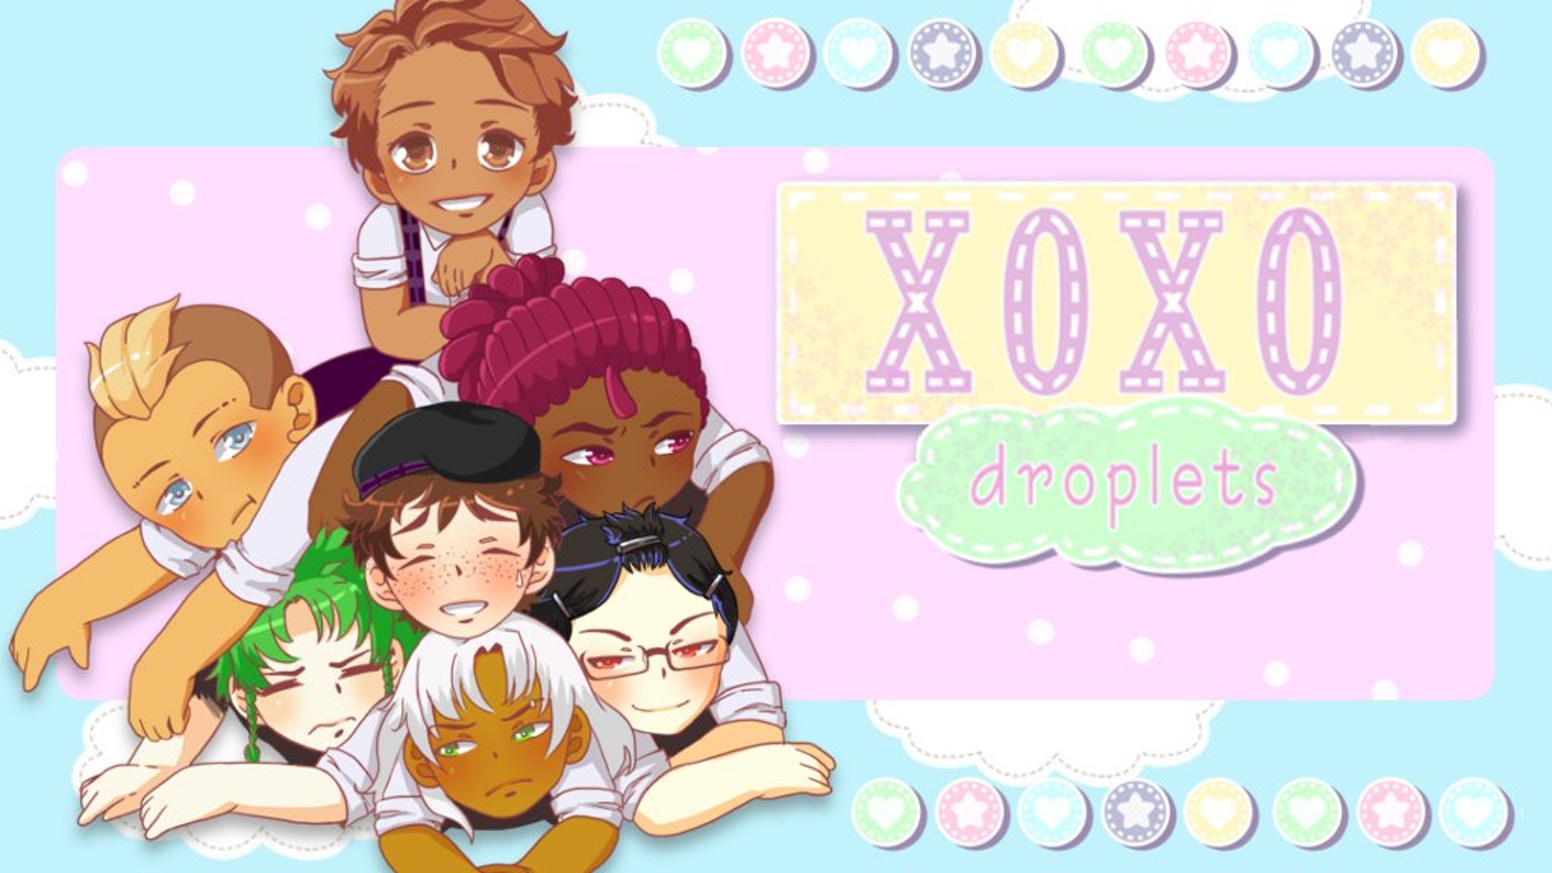 An otome visual novel about a humorously jerky young lady and her mission to woo one of six obnoxious guys. Free and paid versions!